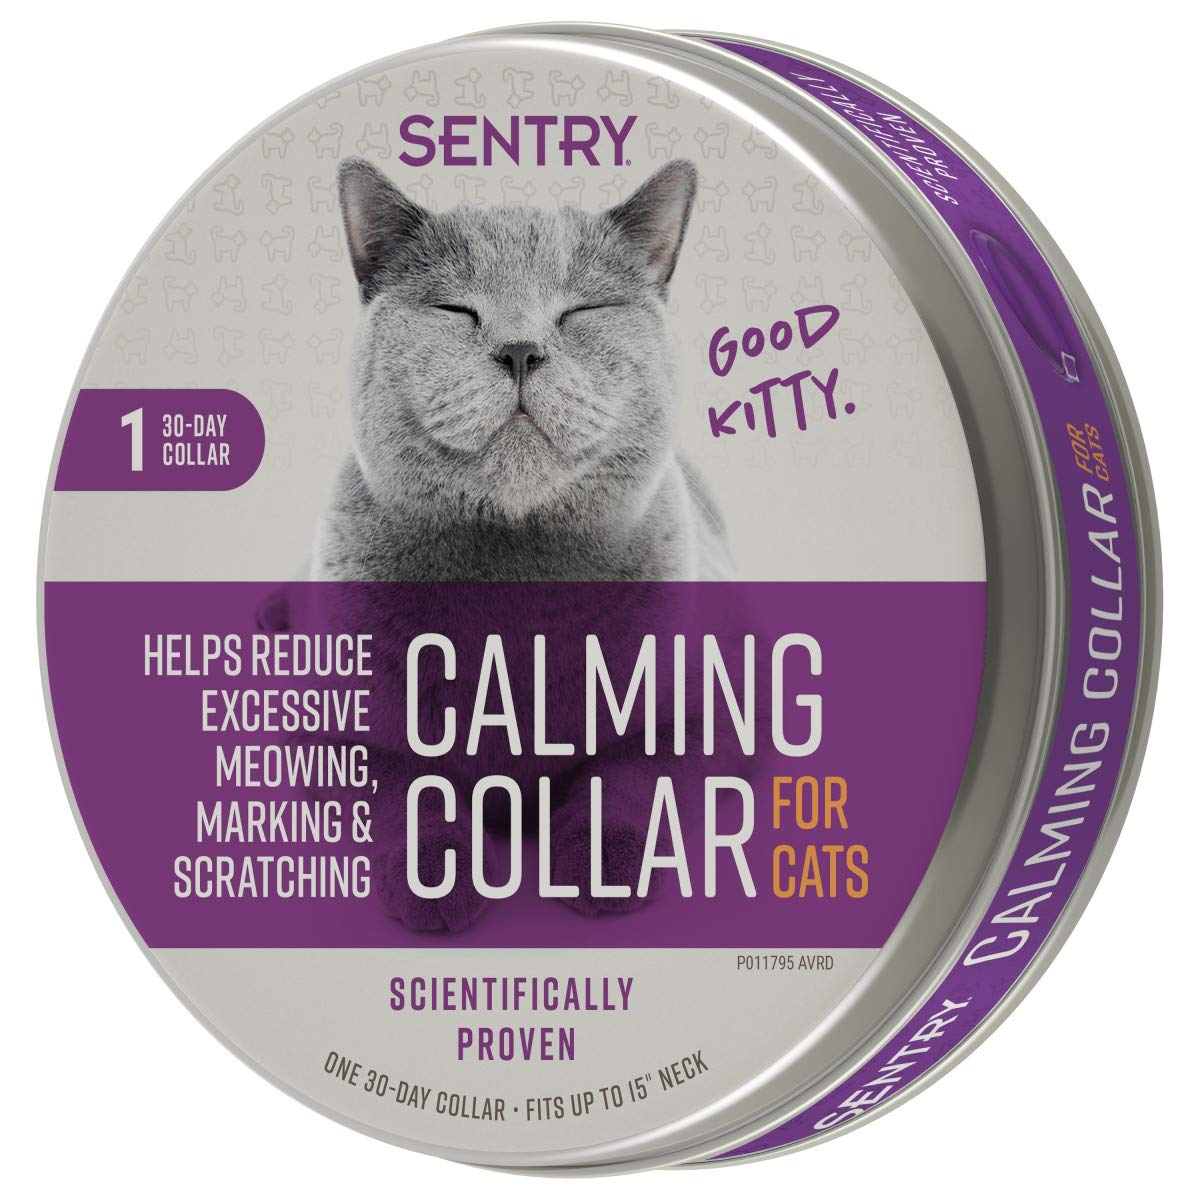 Sentry Calming Collar for Cats 1Ct by SENTRY Pet Care